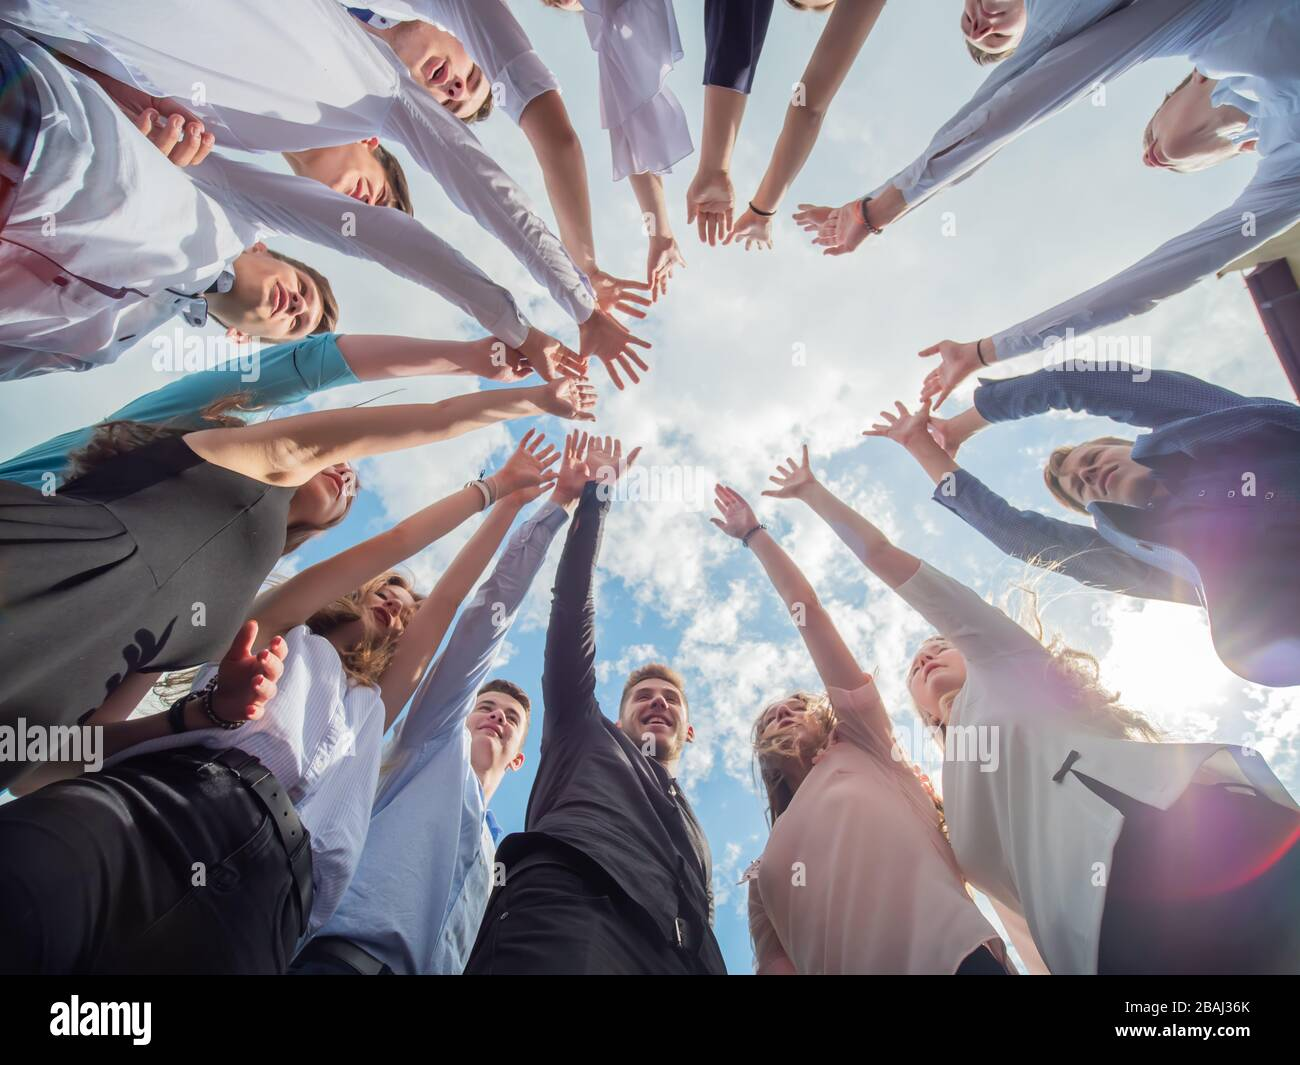 Friendly friends spread their hands. The concept of strong friendship. Stock Photo